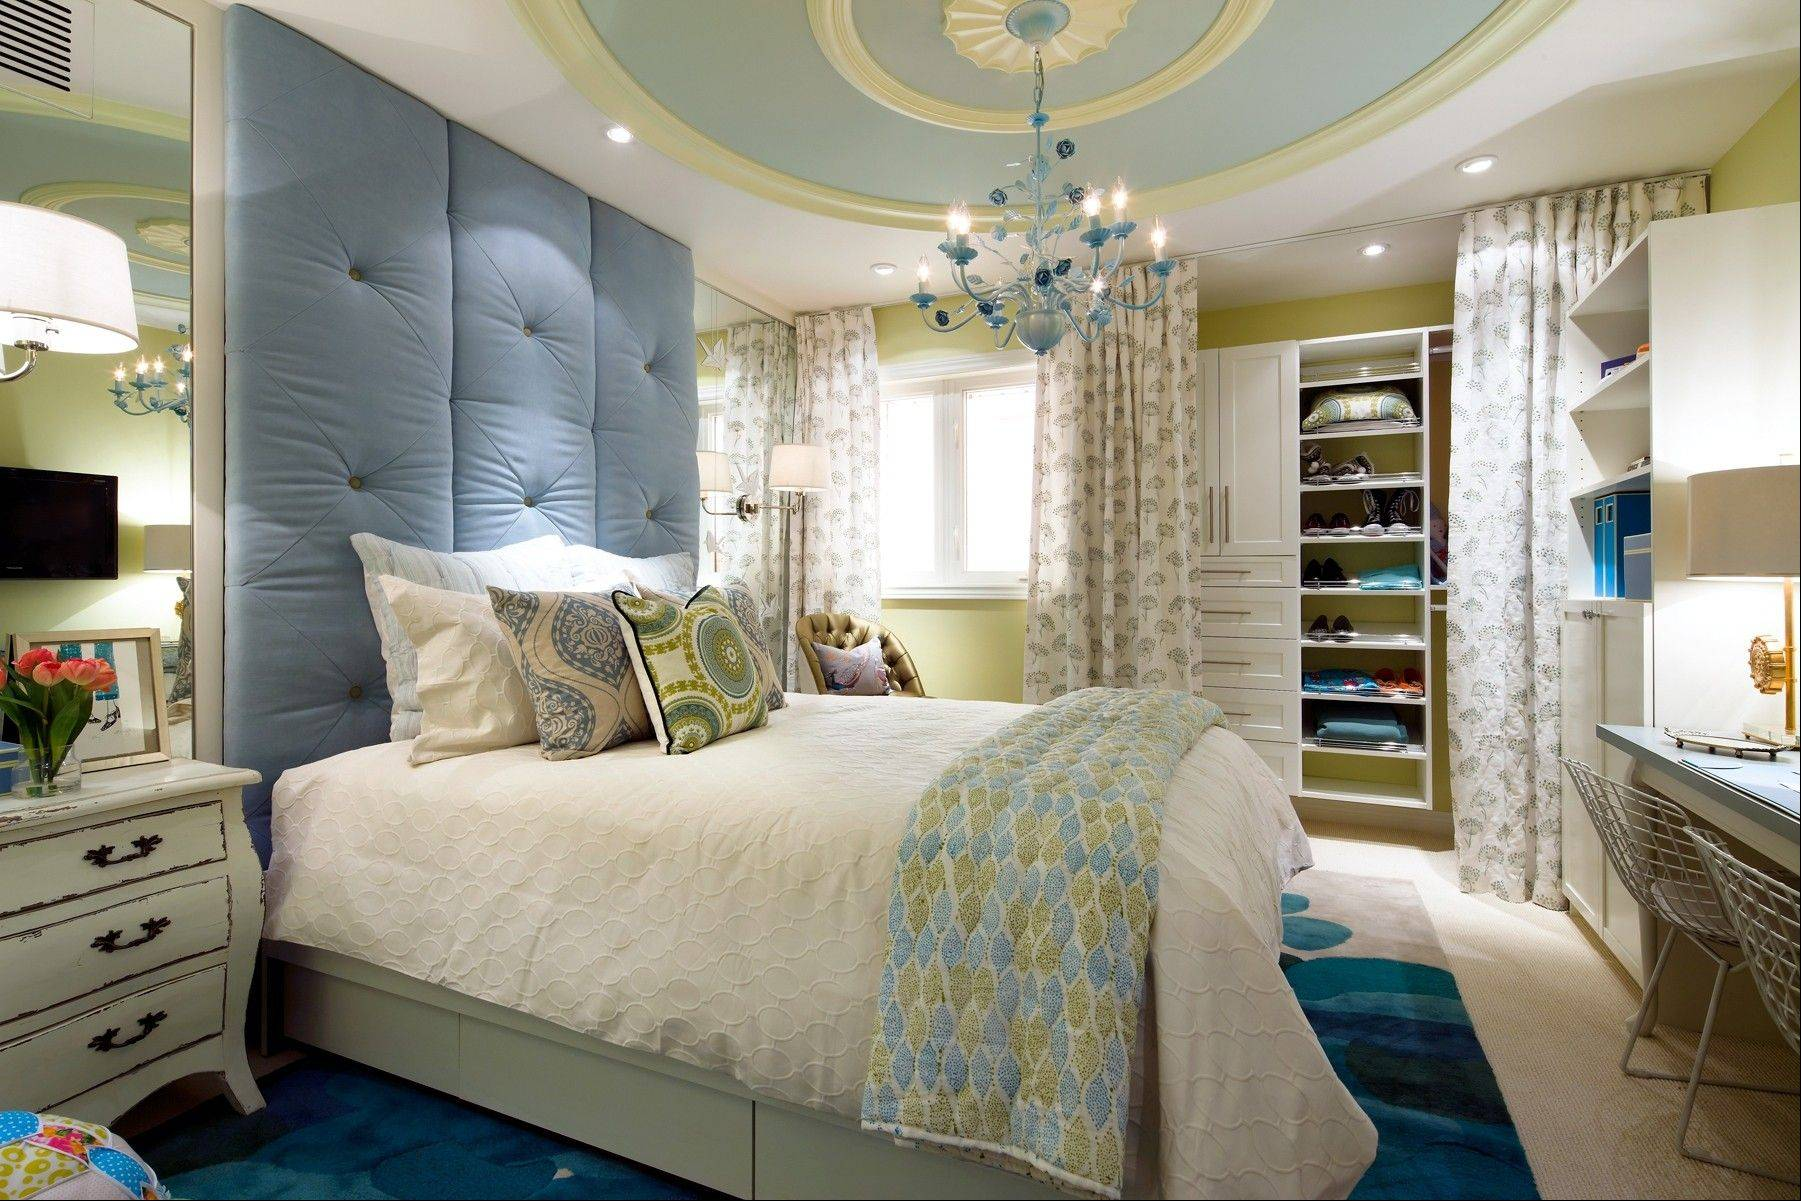 Image of: Candice Olson bedrooms design